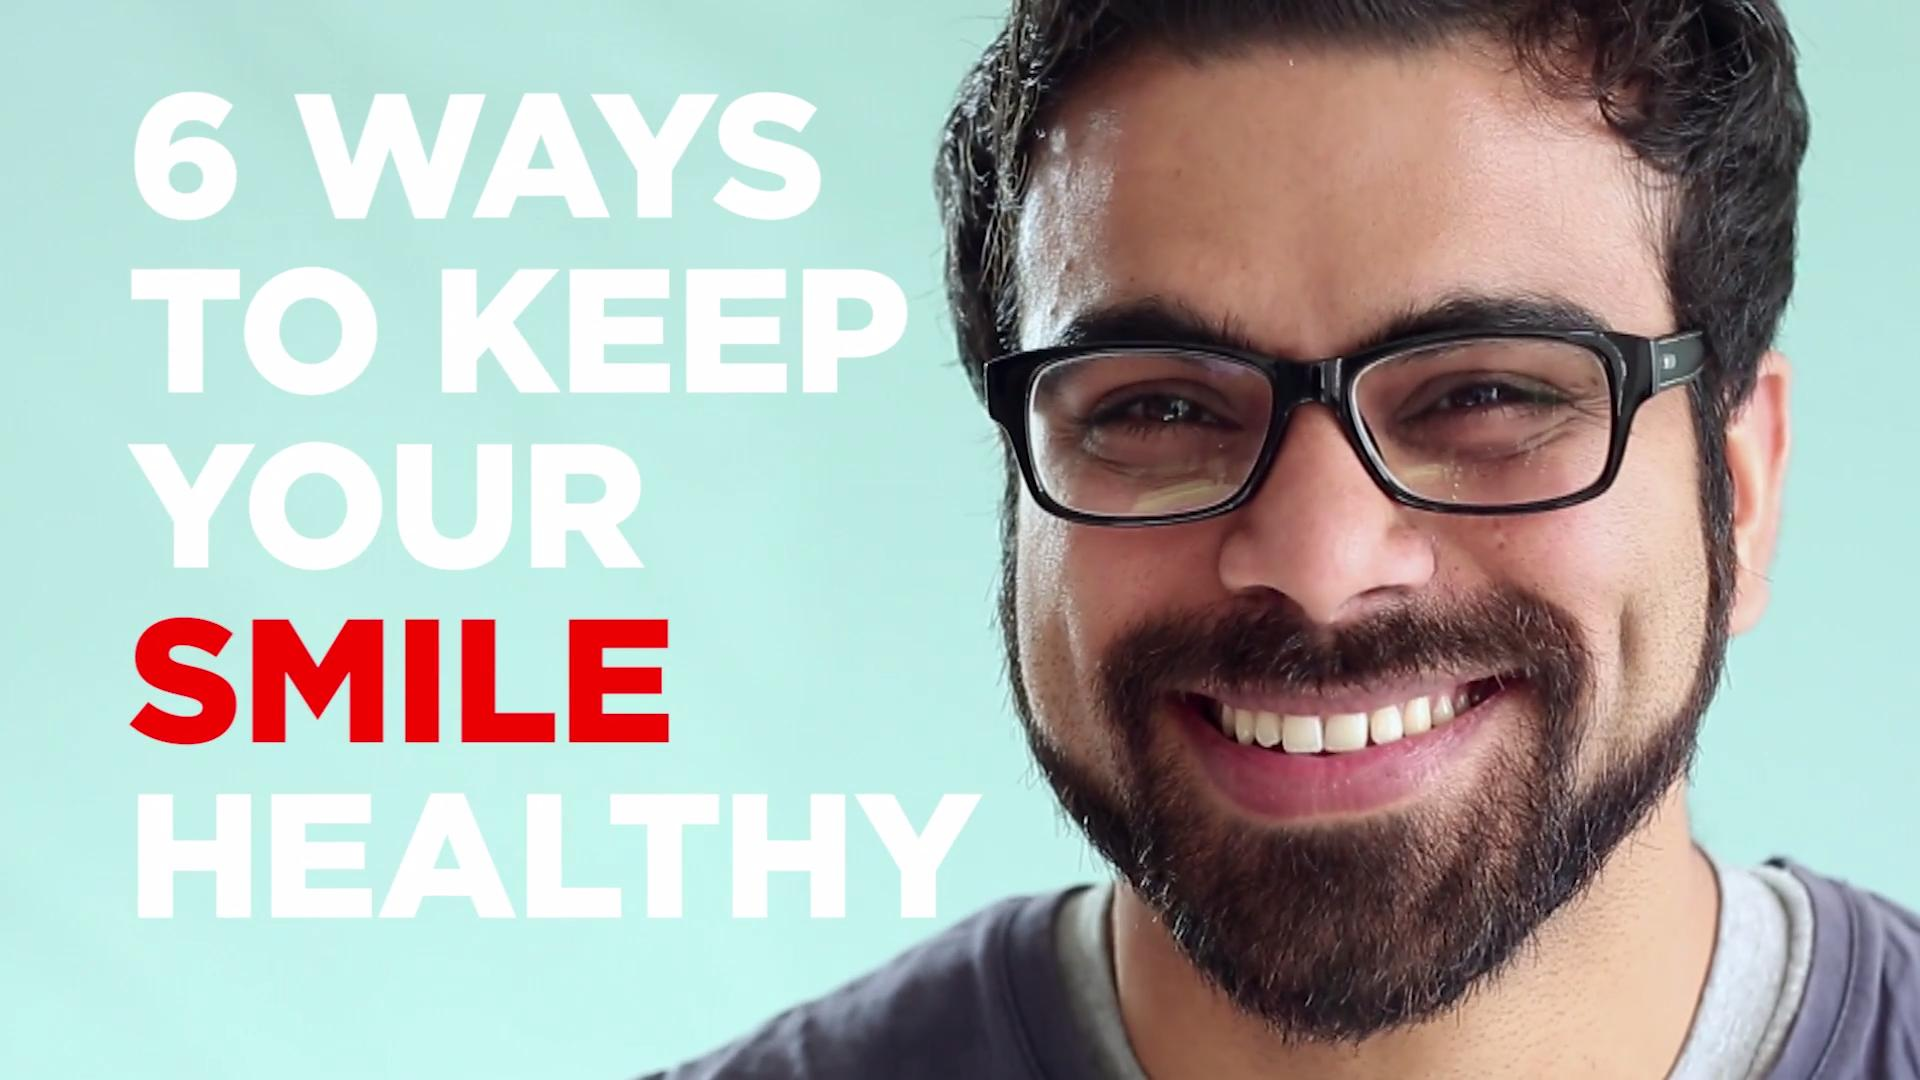 Healthy teeth, healthy smile?